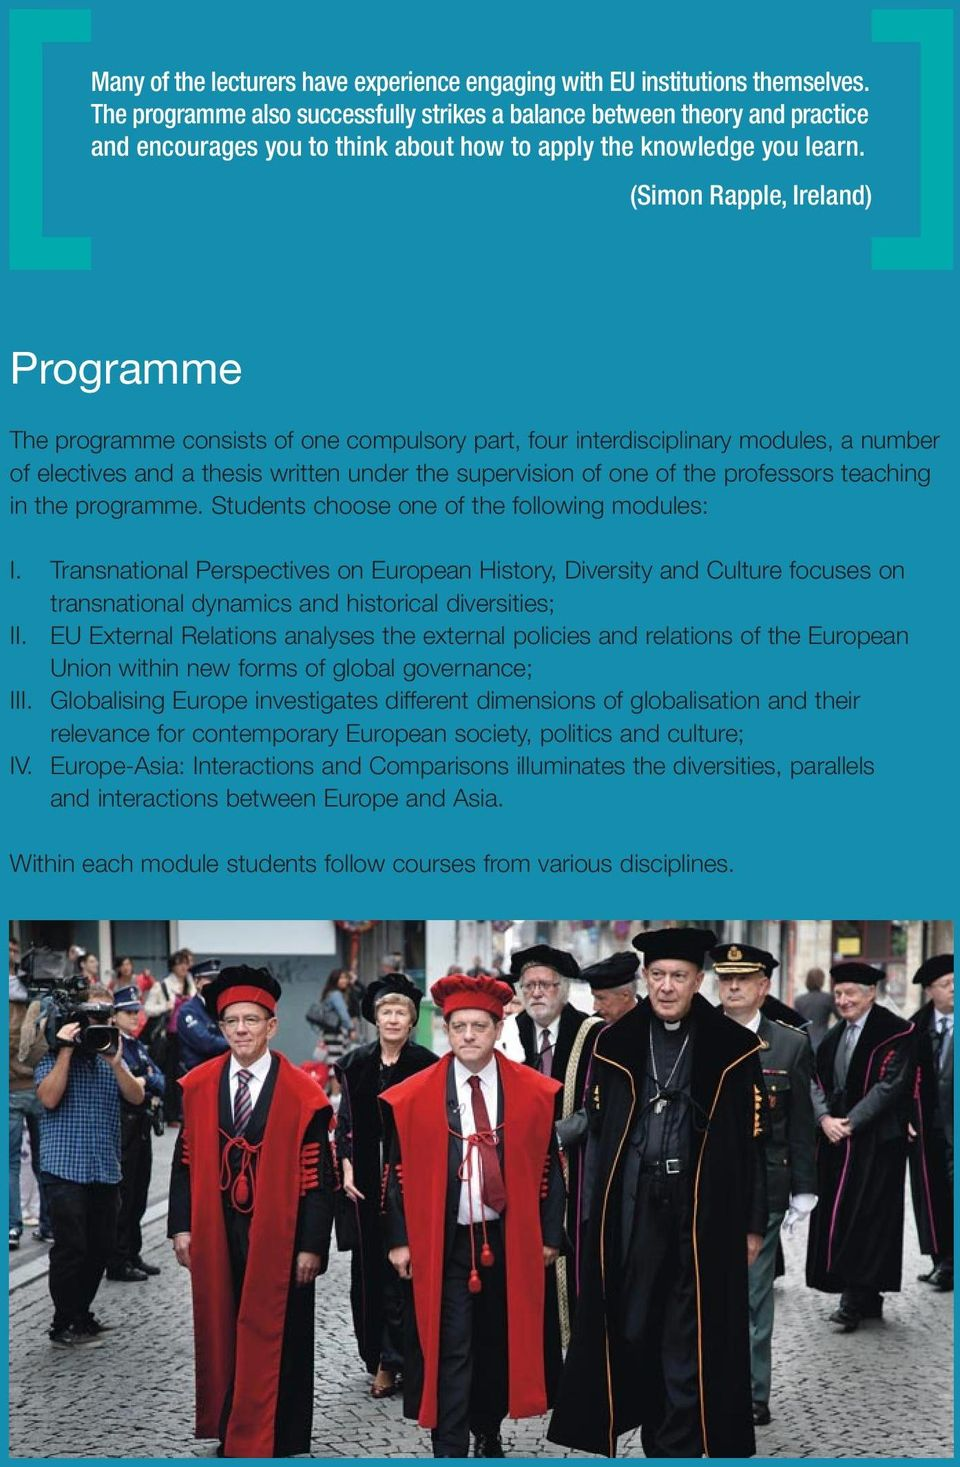 (Simon Rapple, Ireland) Programme The programme consists of one compulsory part, four interdisciplinary modules, a number of electives and a thesis written under the supervision of one of the